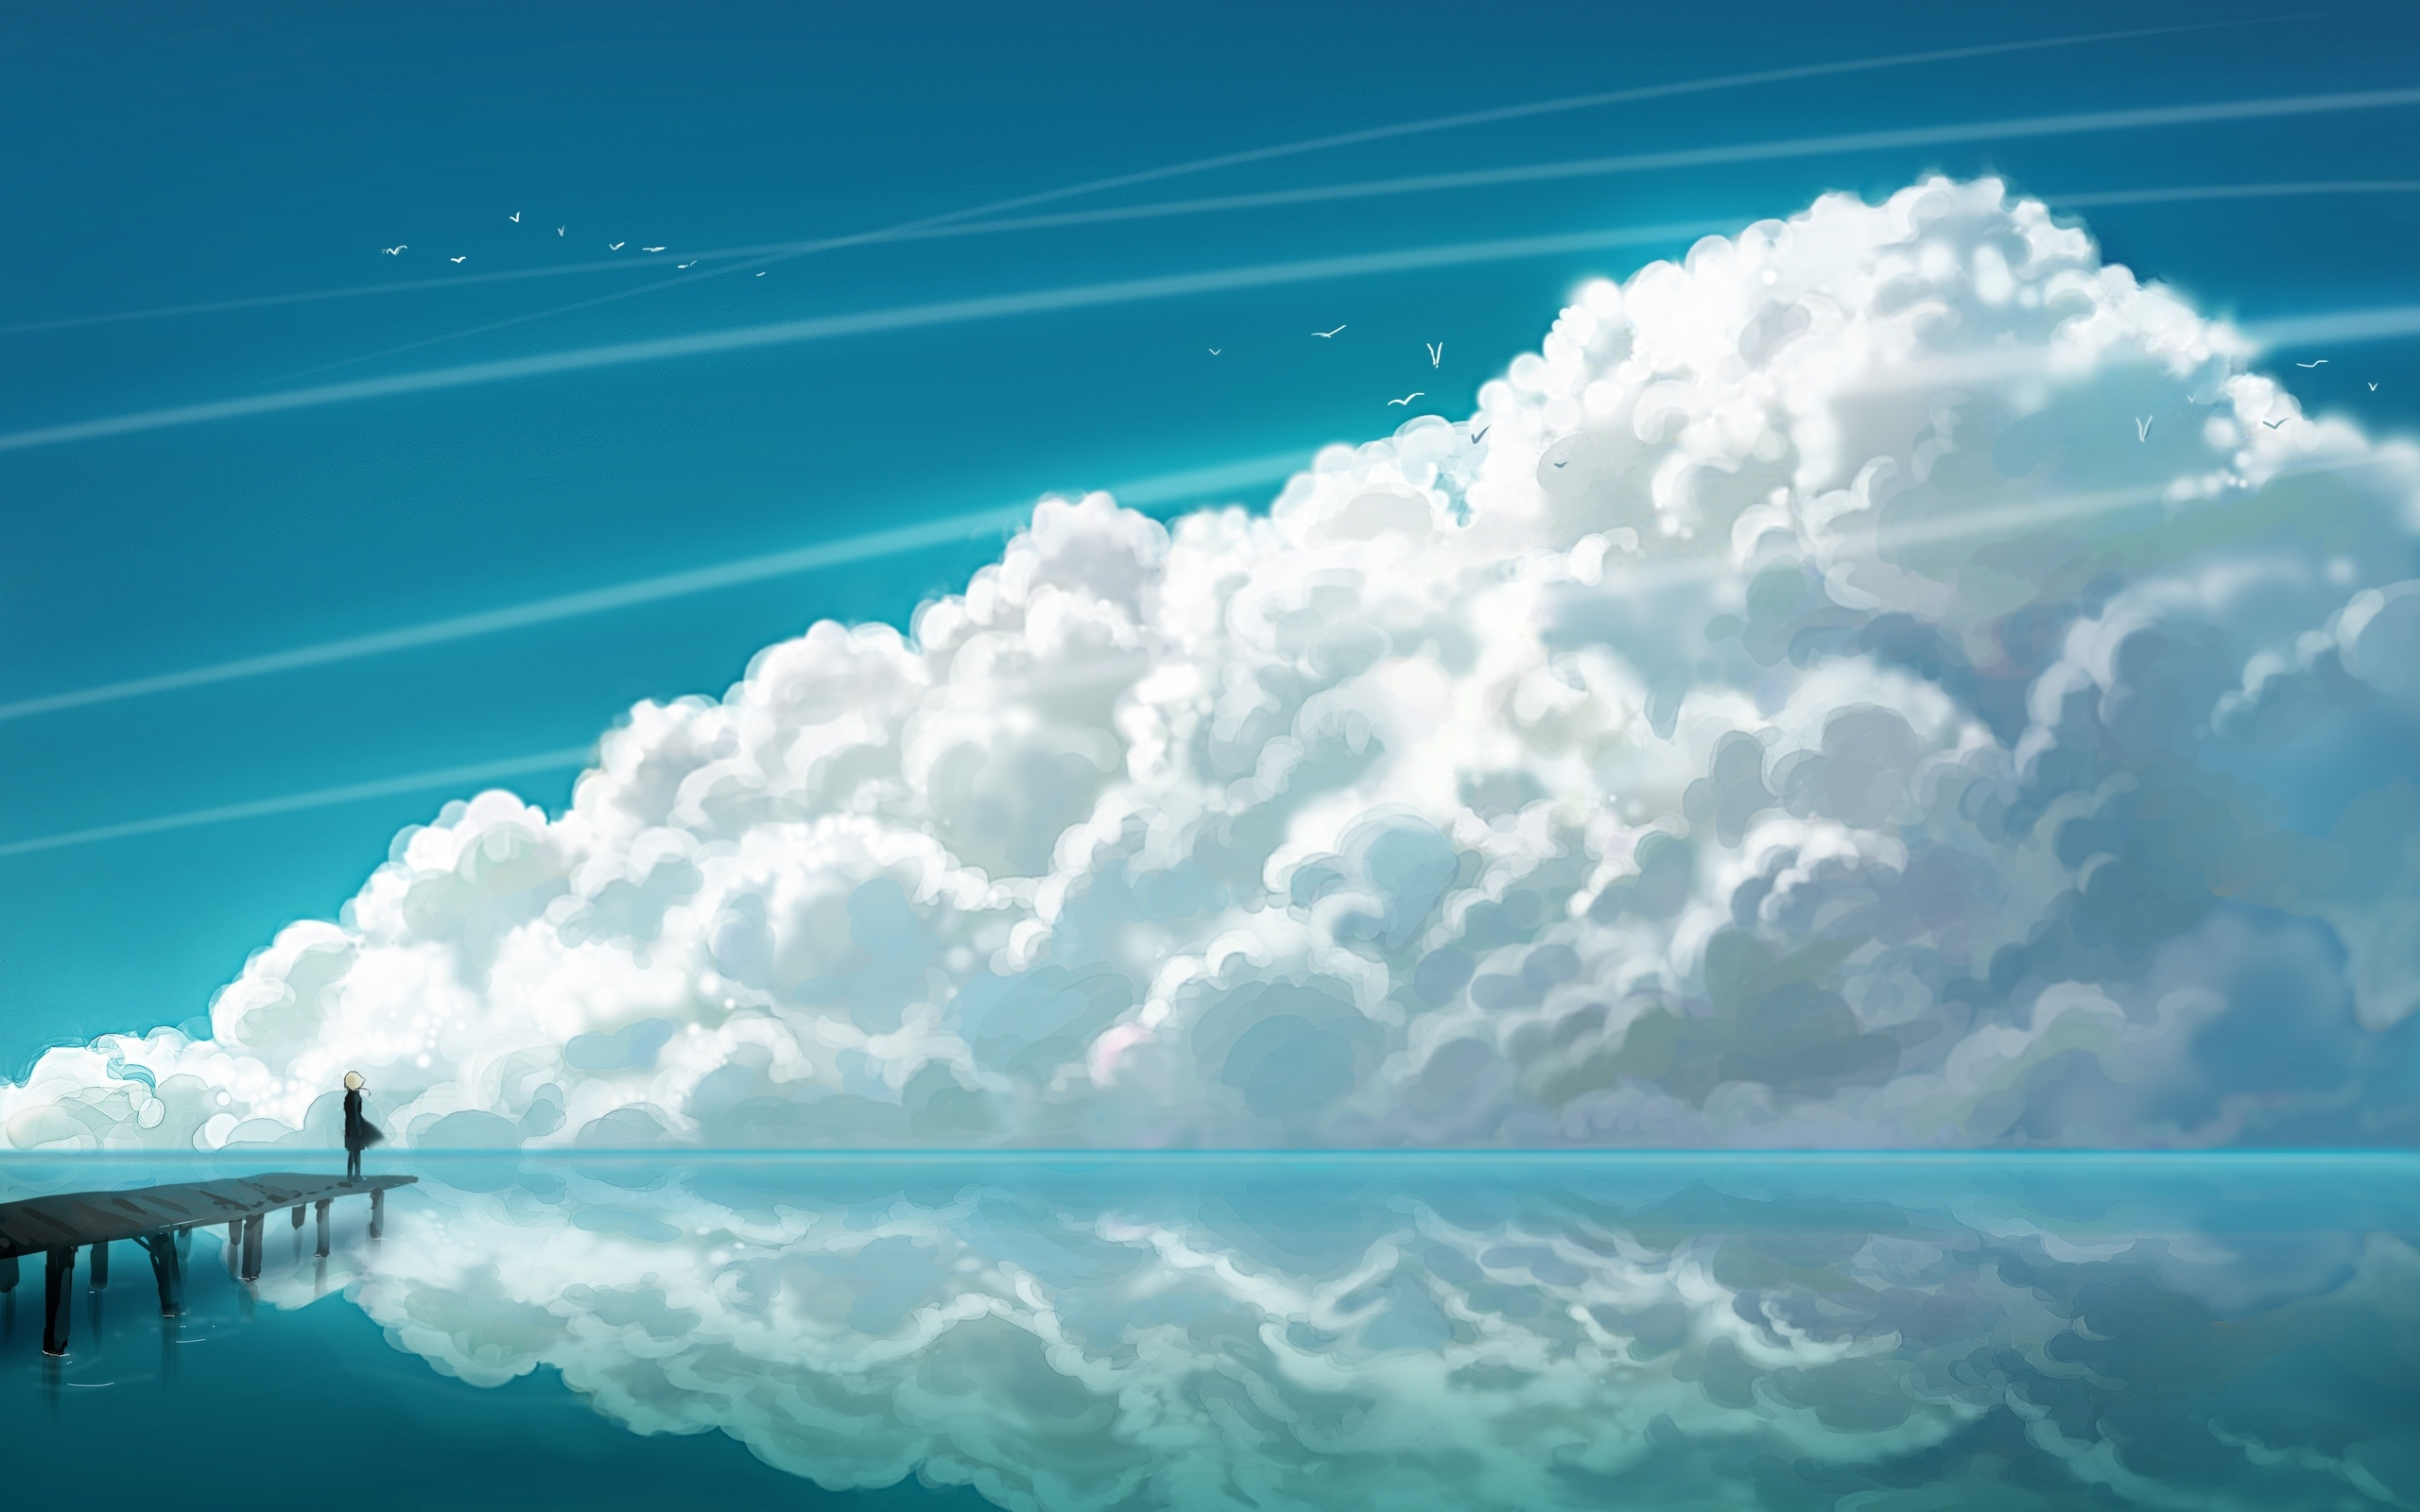 Cloud Wallpaper Anime Art HD Wallpapers Desktop 2560x1600